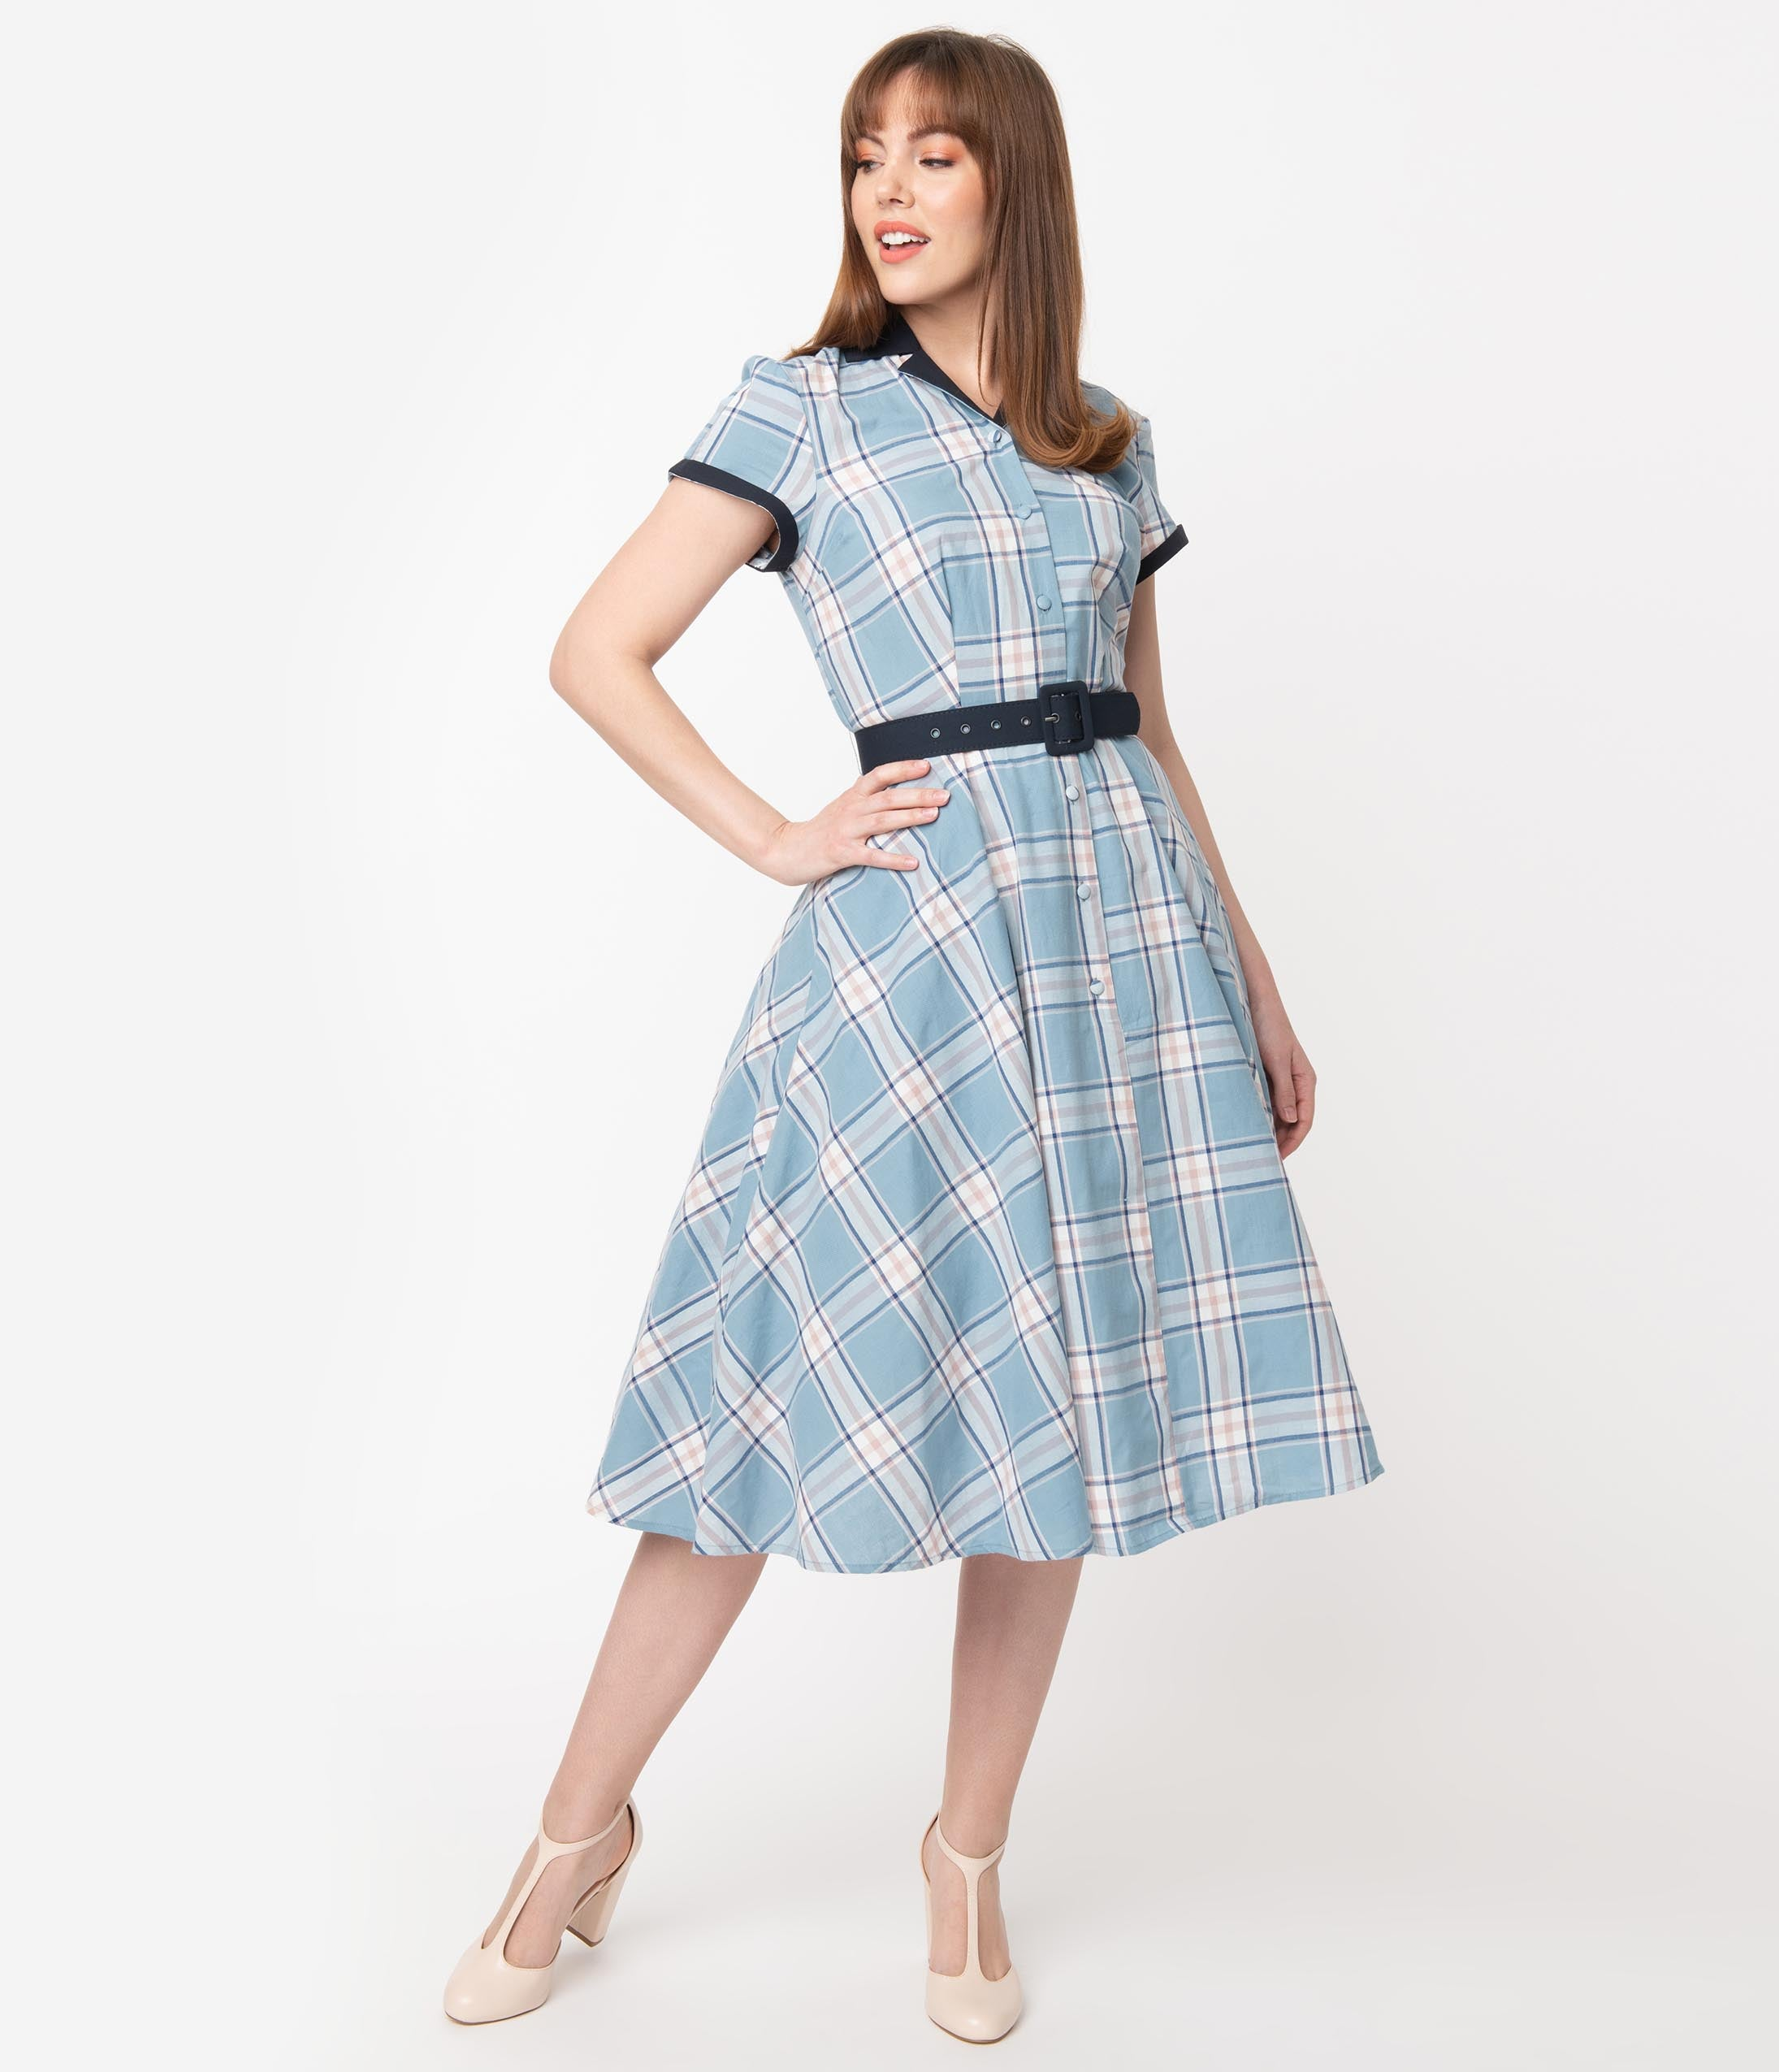 1950s Dresses, 50s Dresses | 1950s Style Dresses Unique Vintage 1950S Style Light Blue Plaid Alexis Swing Dress $88.00 AT vintagedancer.com